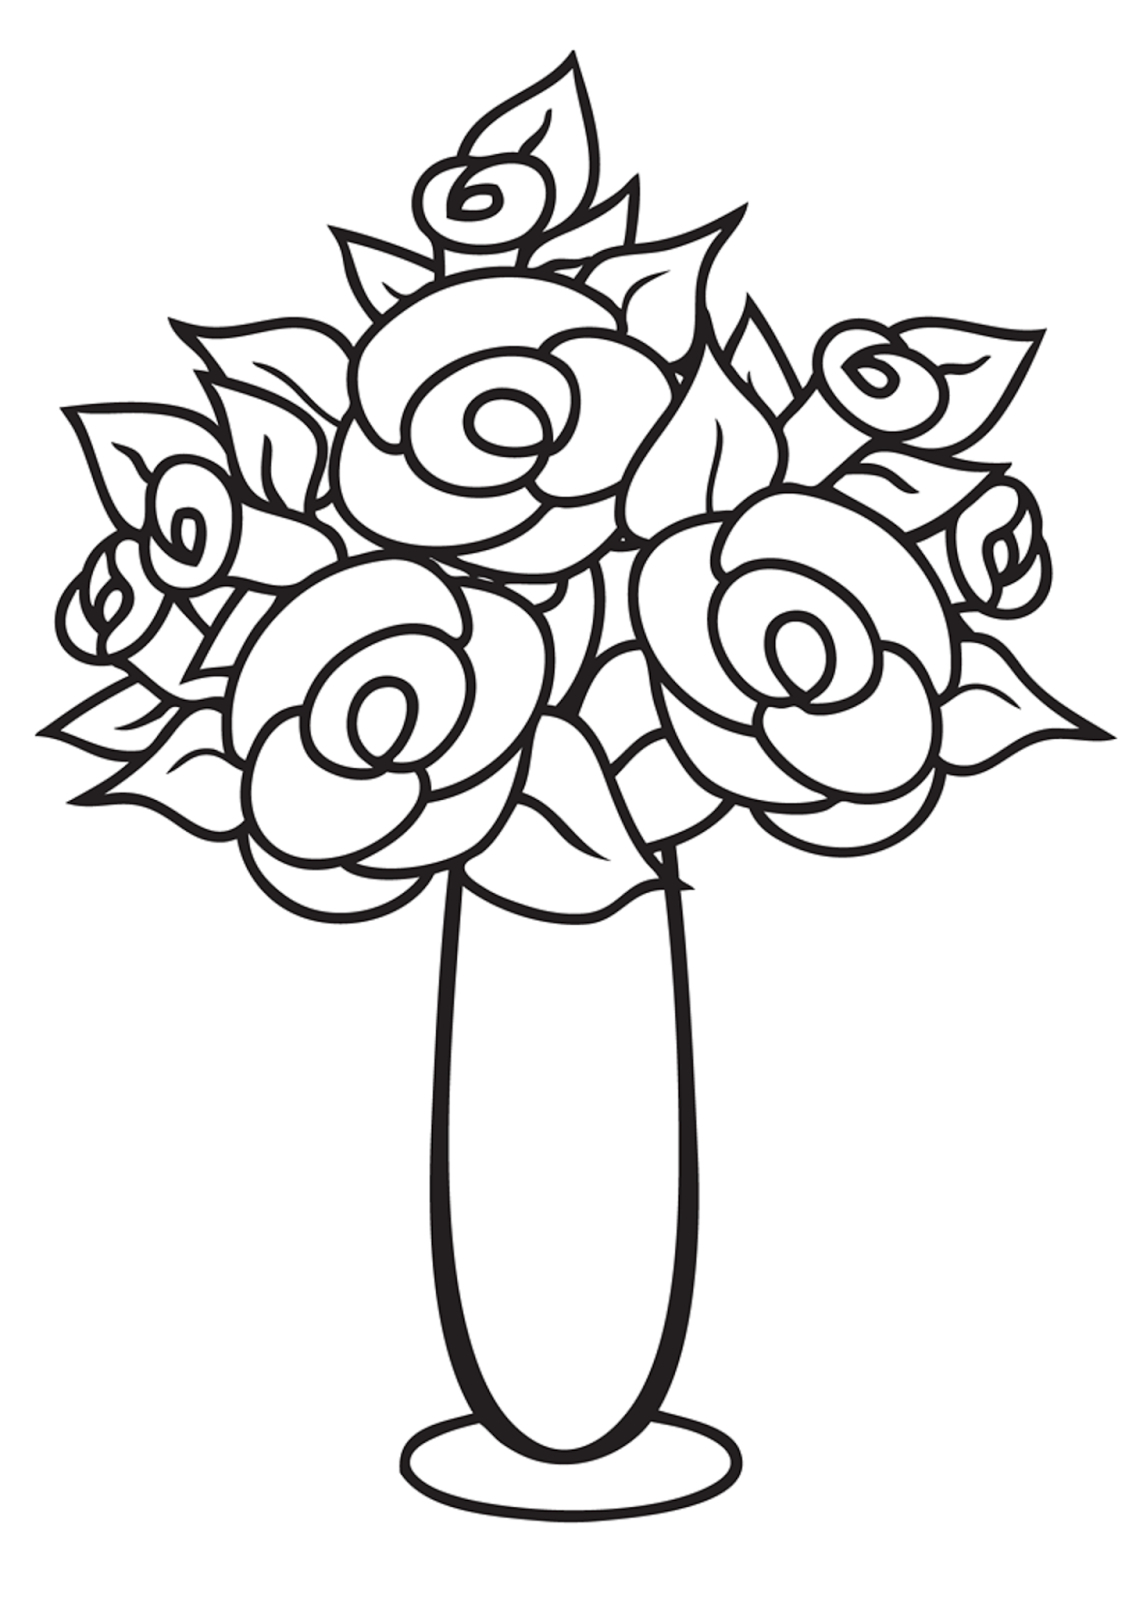 1143x1600 Vase Drawing For Kids Choice Image